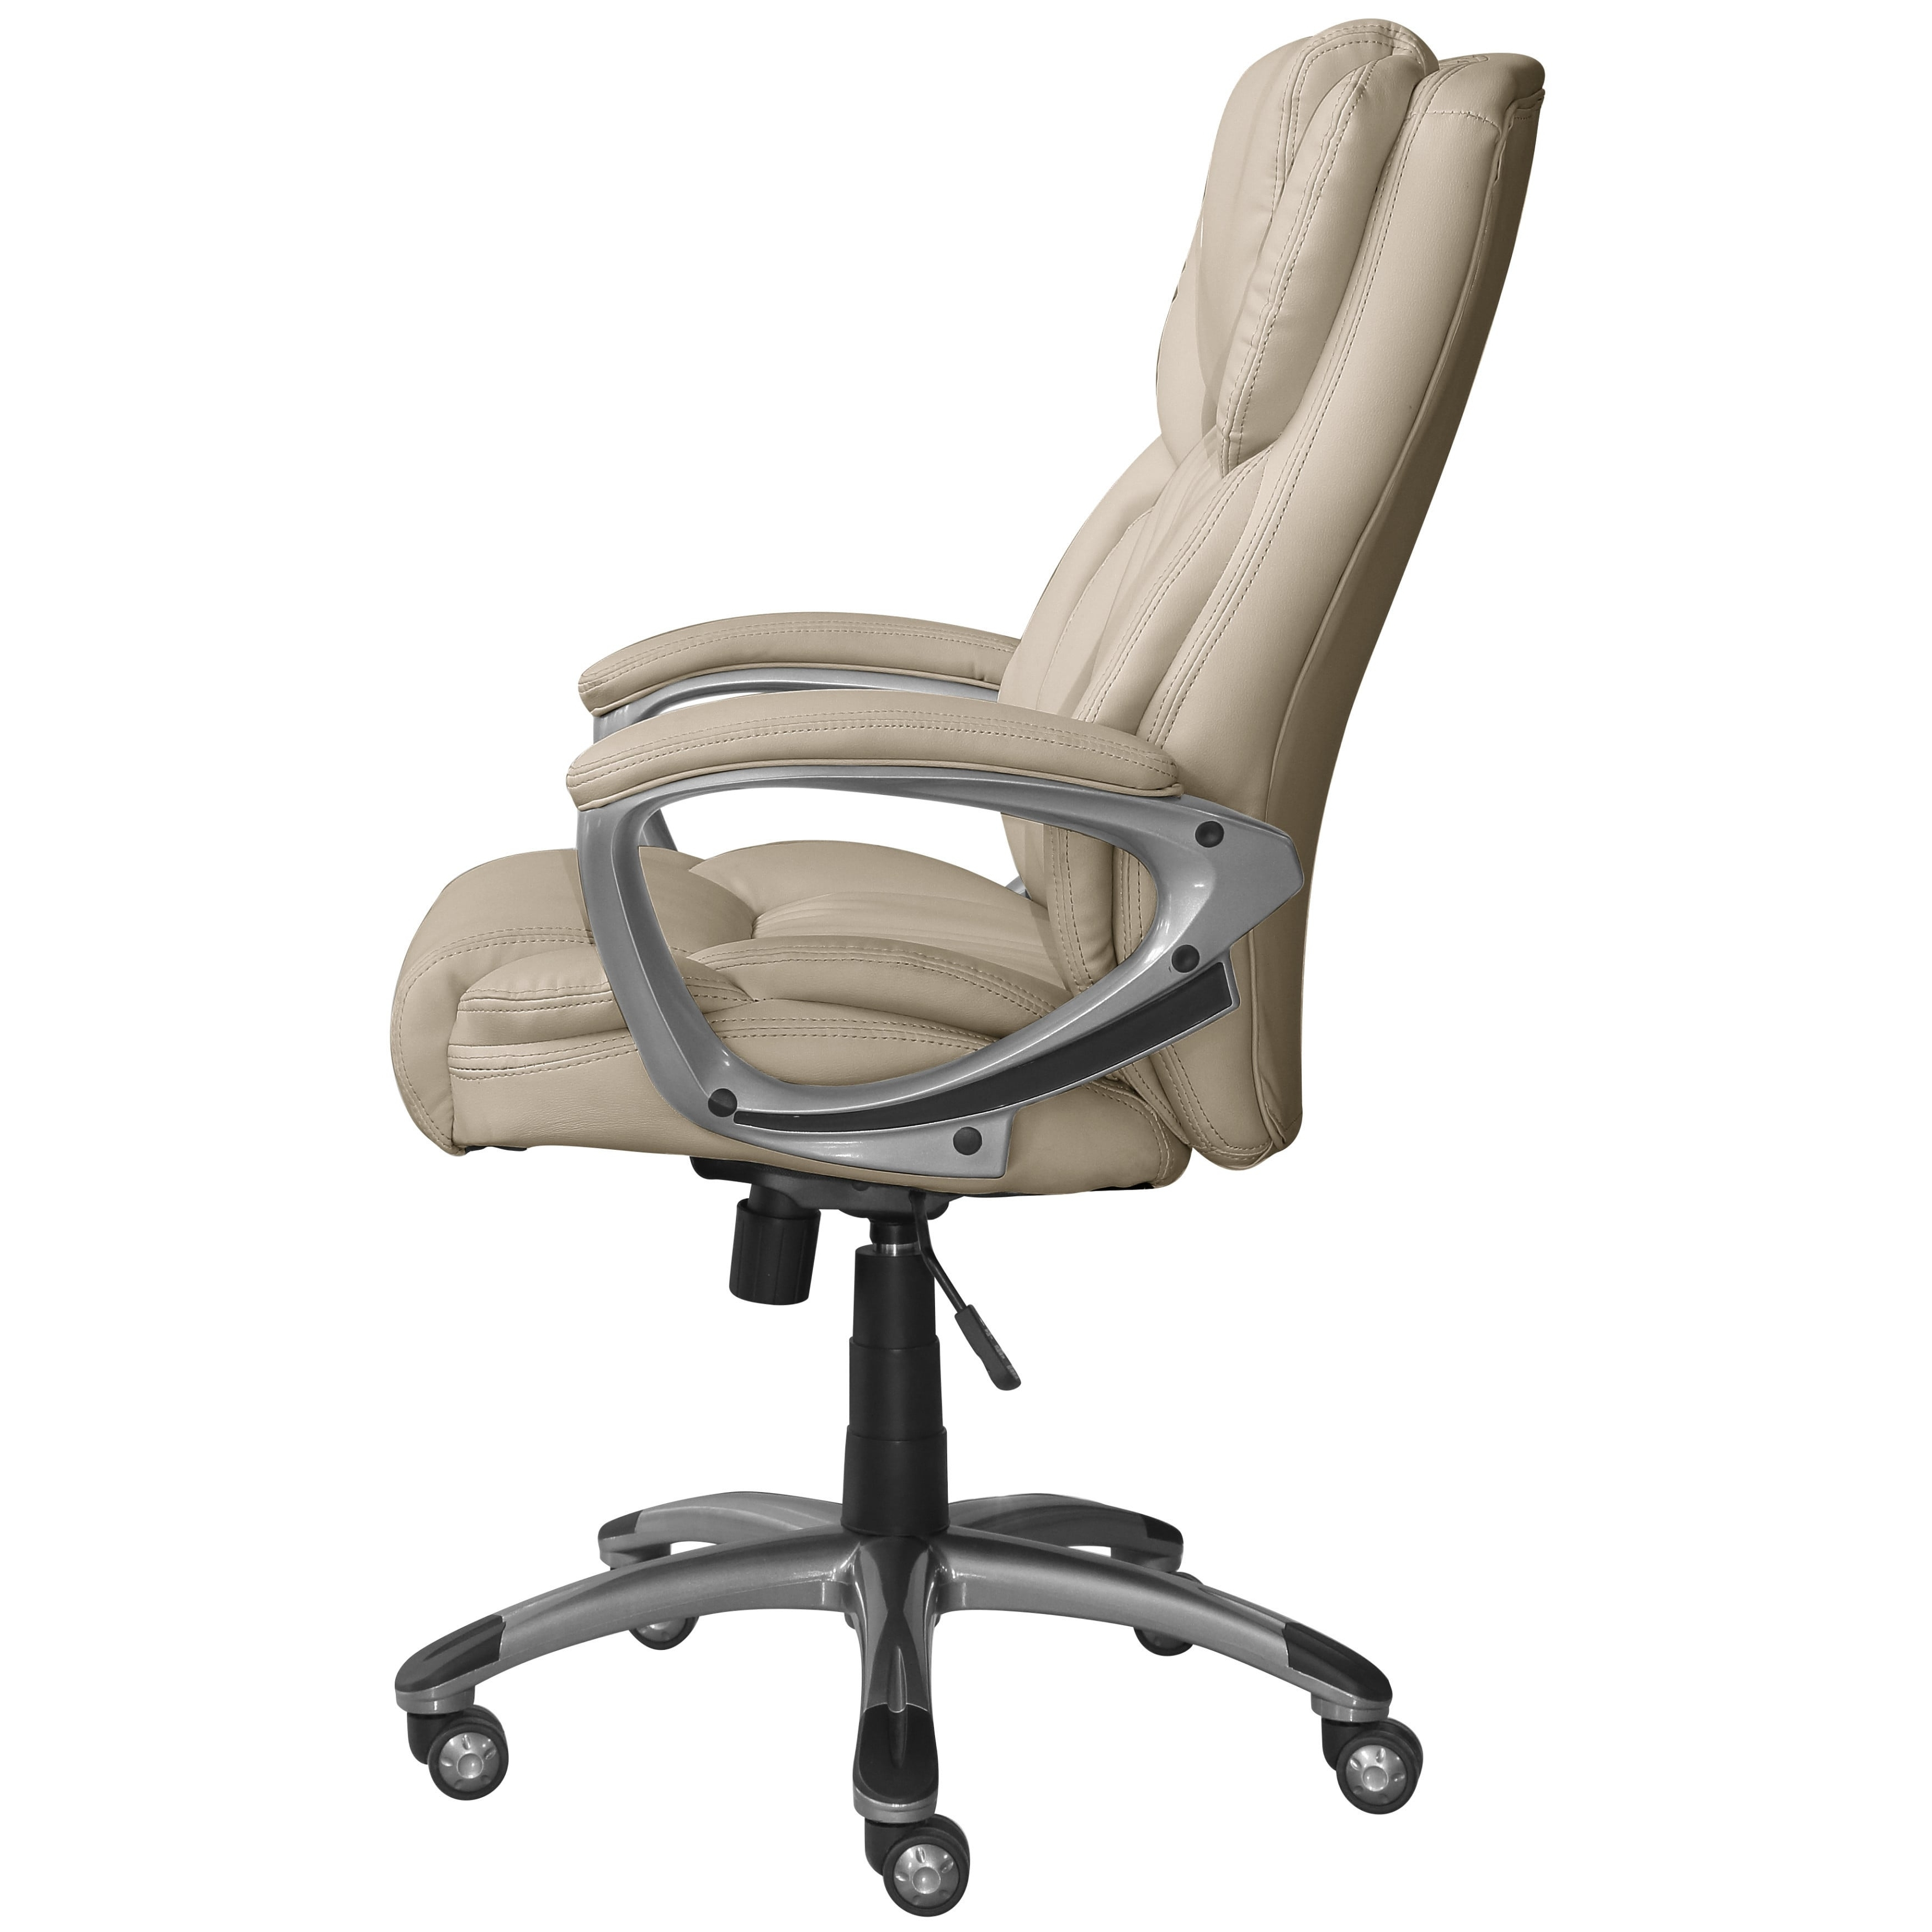 Widely Used Light Beige Microfiber Executive Office Chairs With Regard To Serta Works Bonded Leather Executive Office Chair – Free Shipping (View 10 of 20)